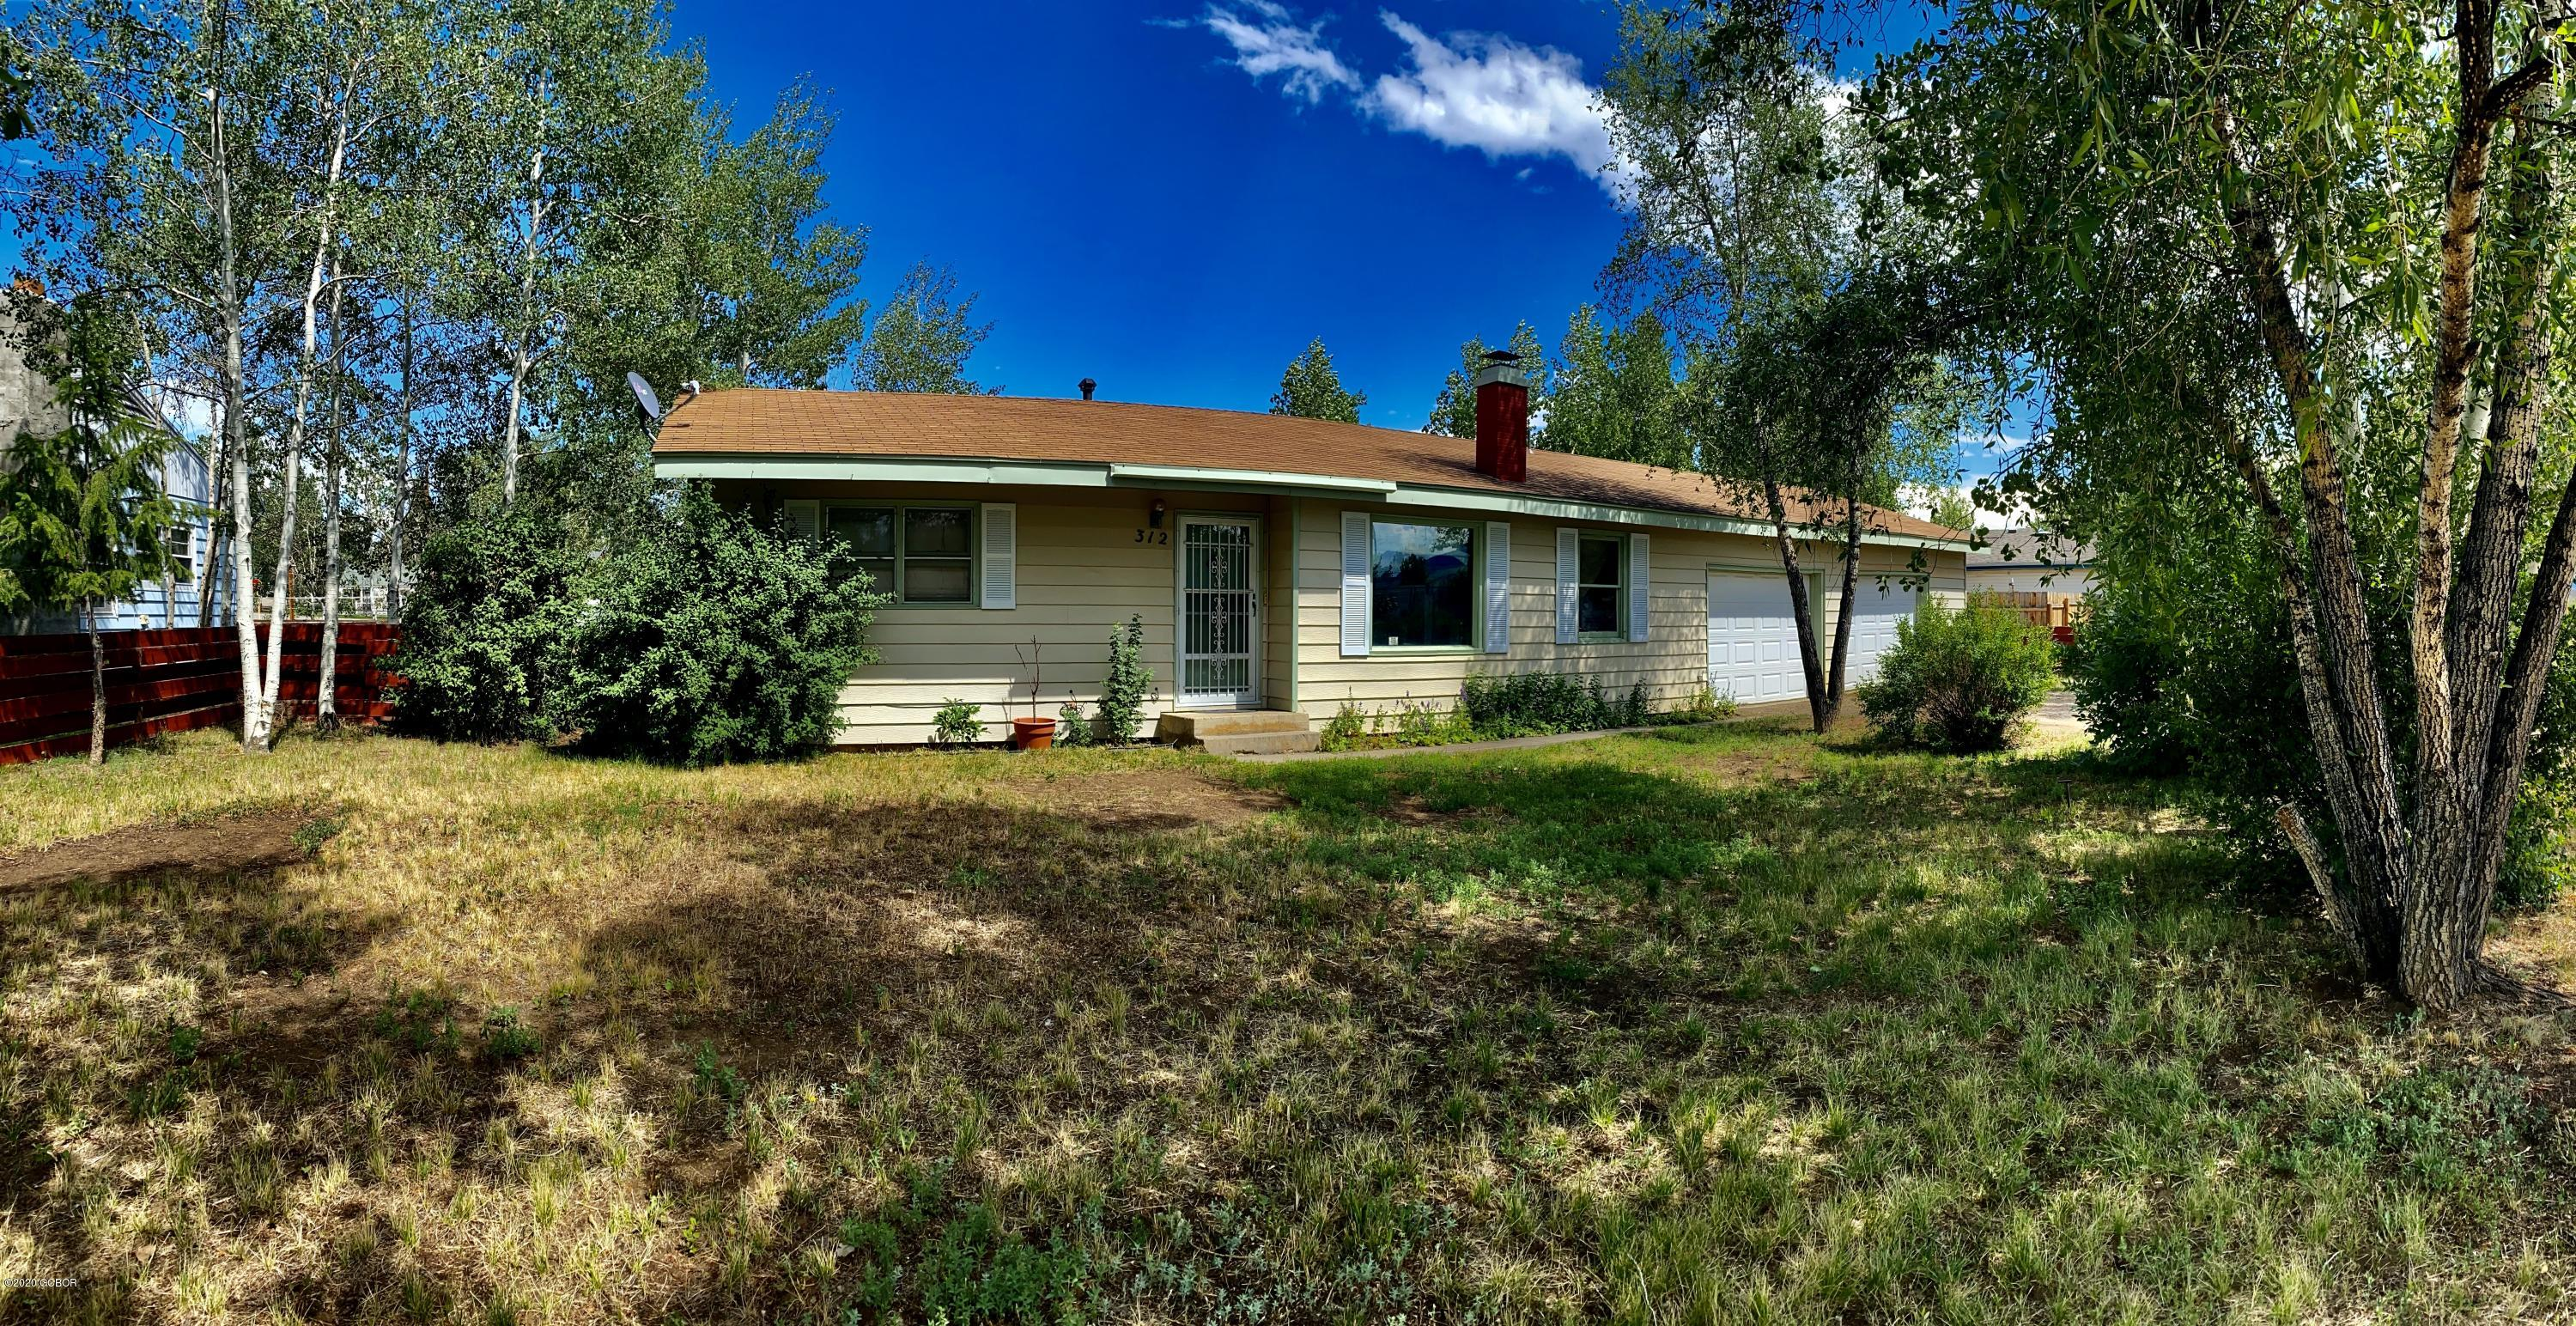 MLS# 20-1062 - 1 - 312 S 8th Street #, Kremmling, CO 80459